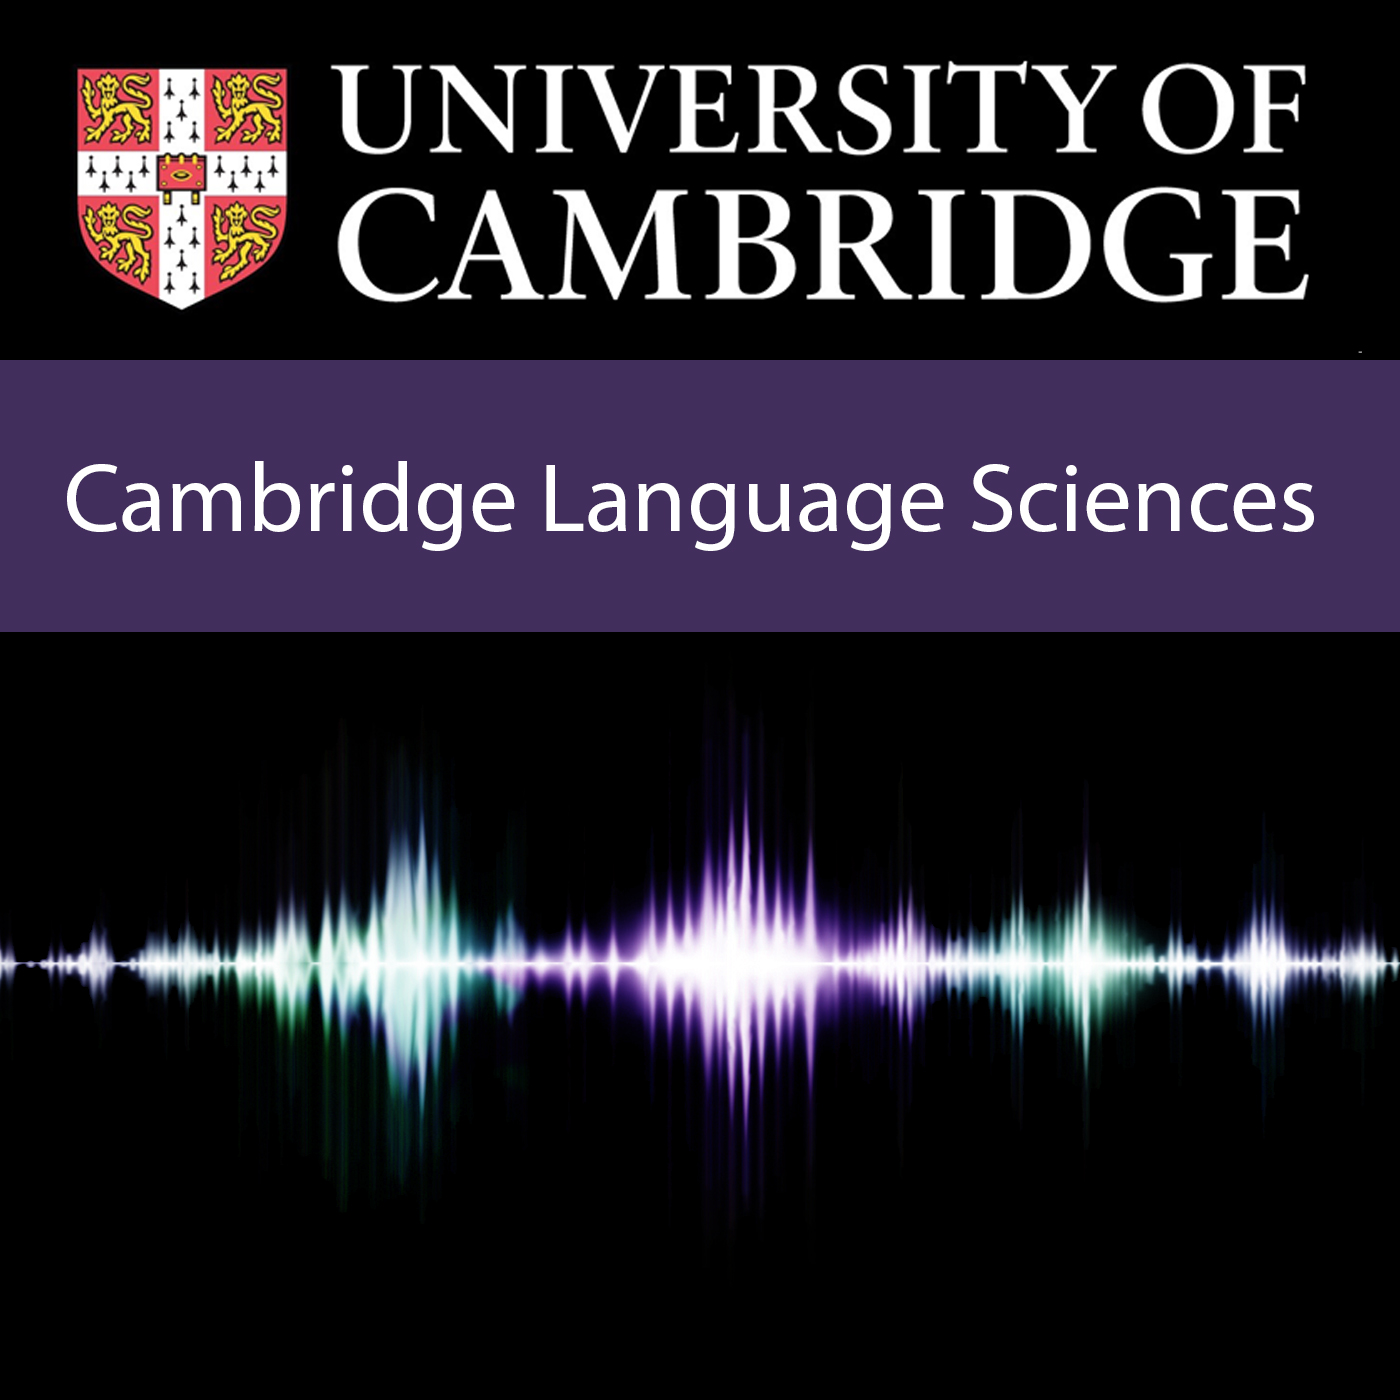 Cambridge Language Sciences's image